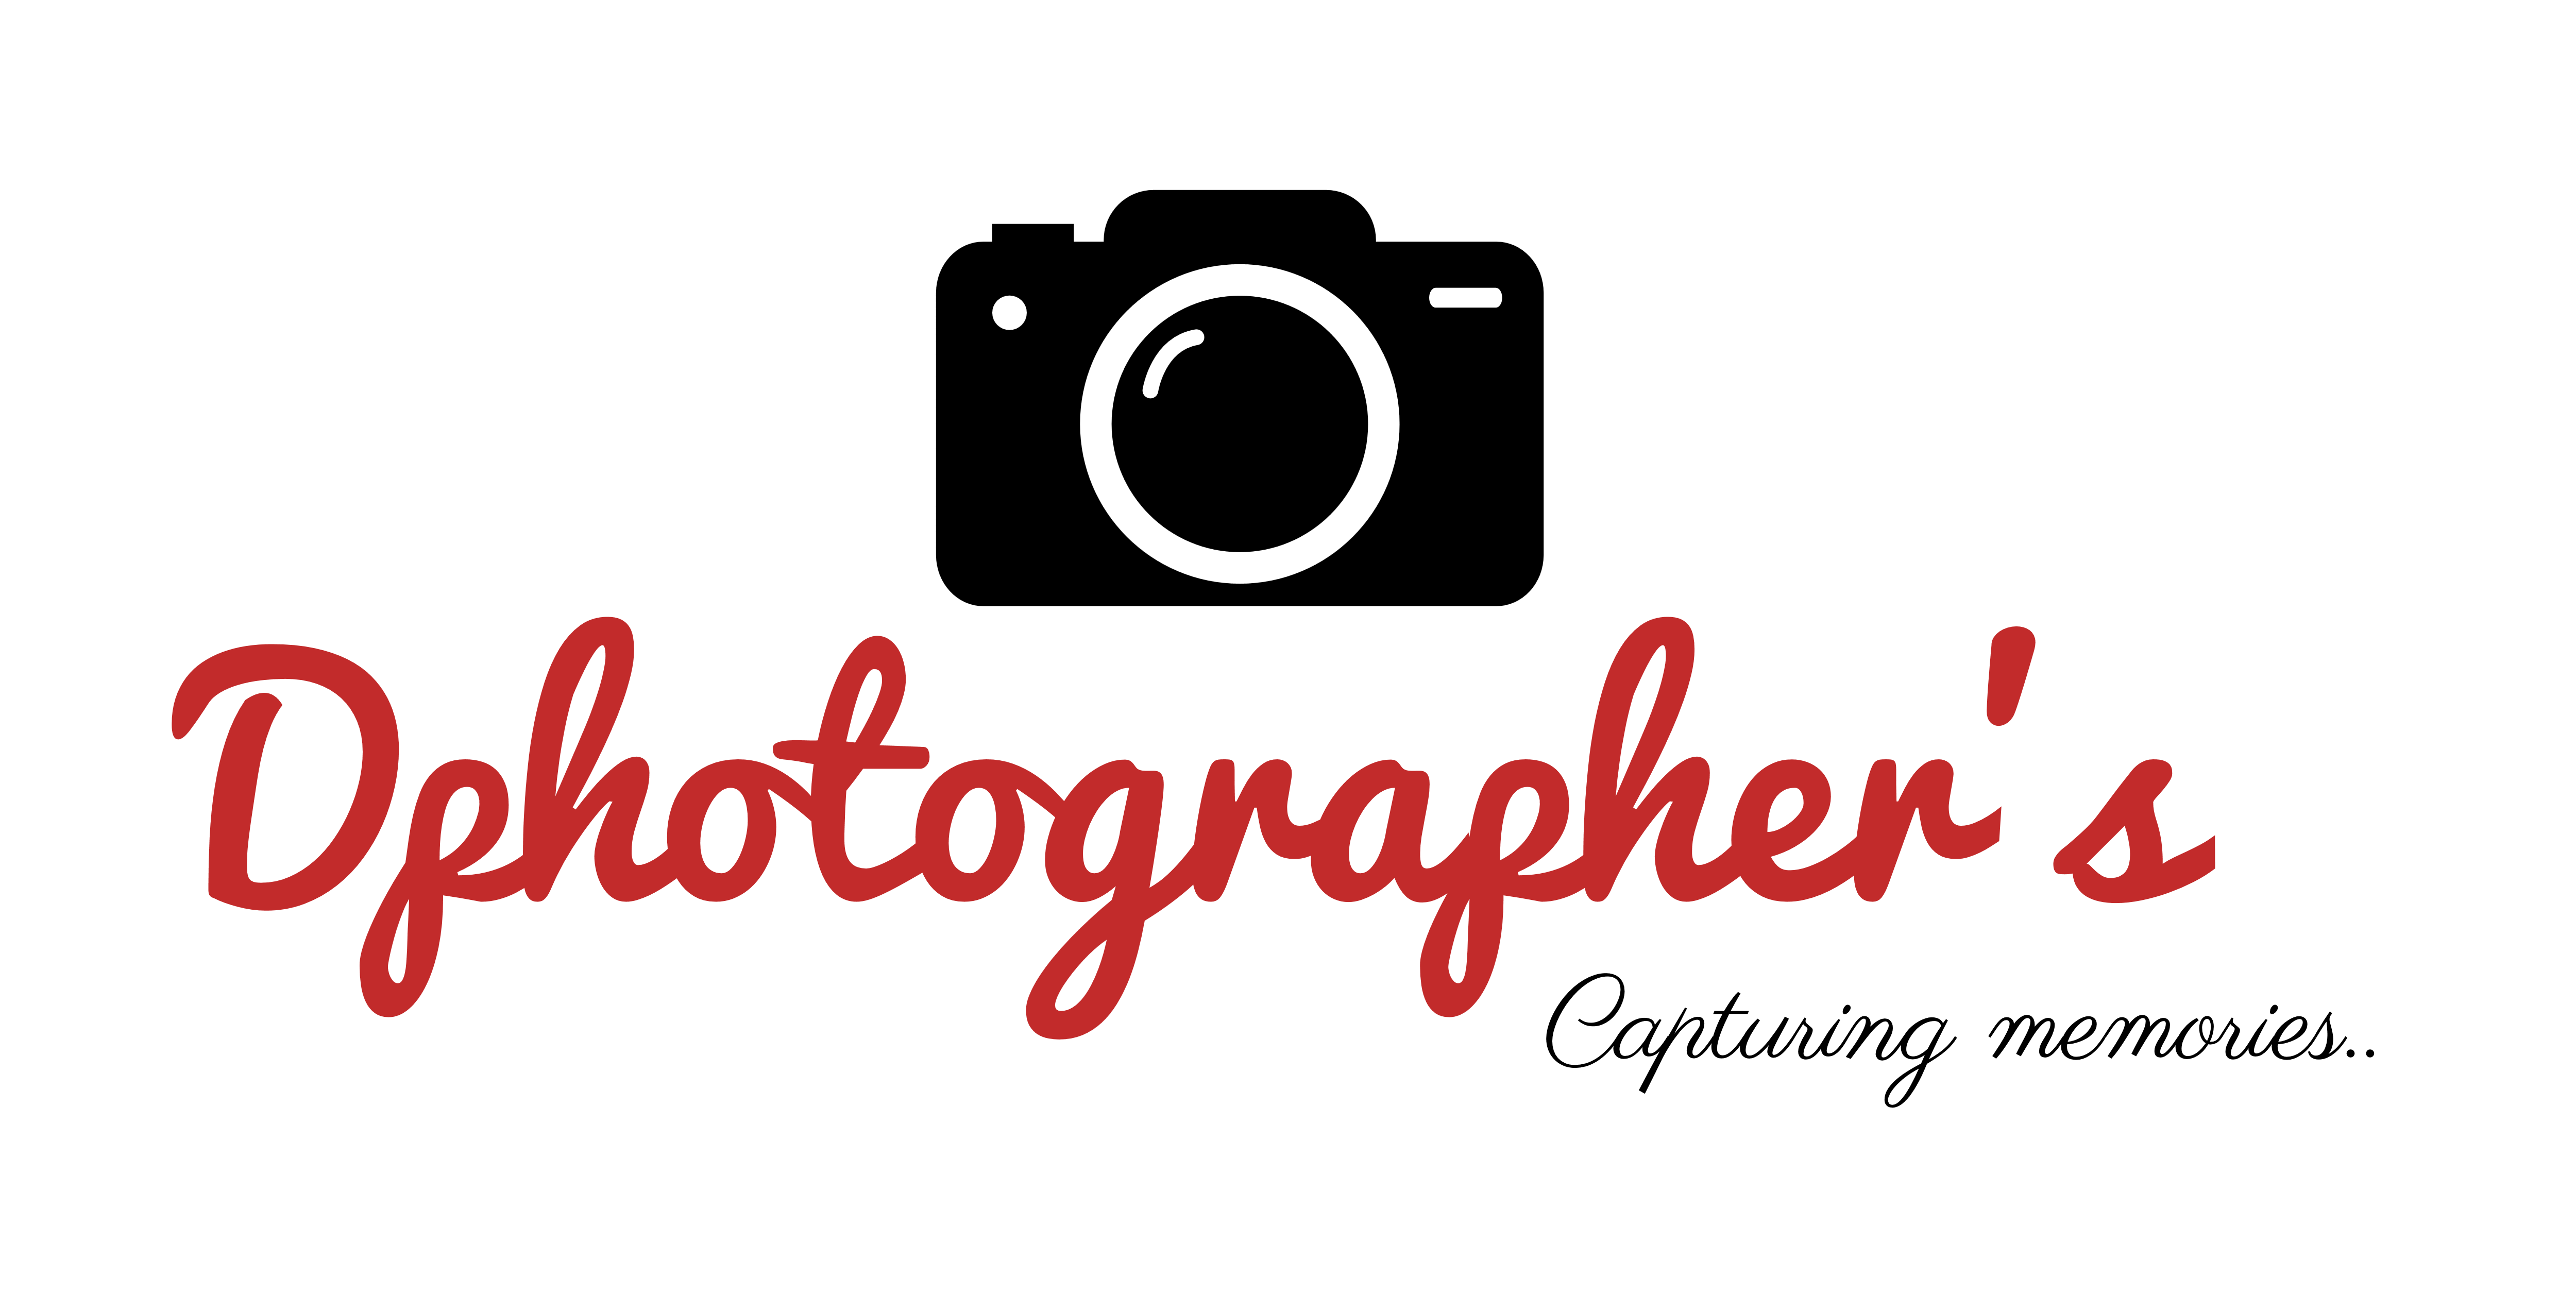 Photography Any type